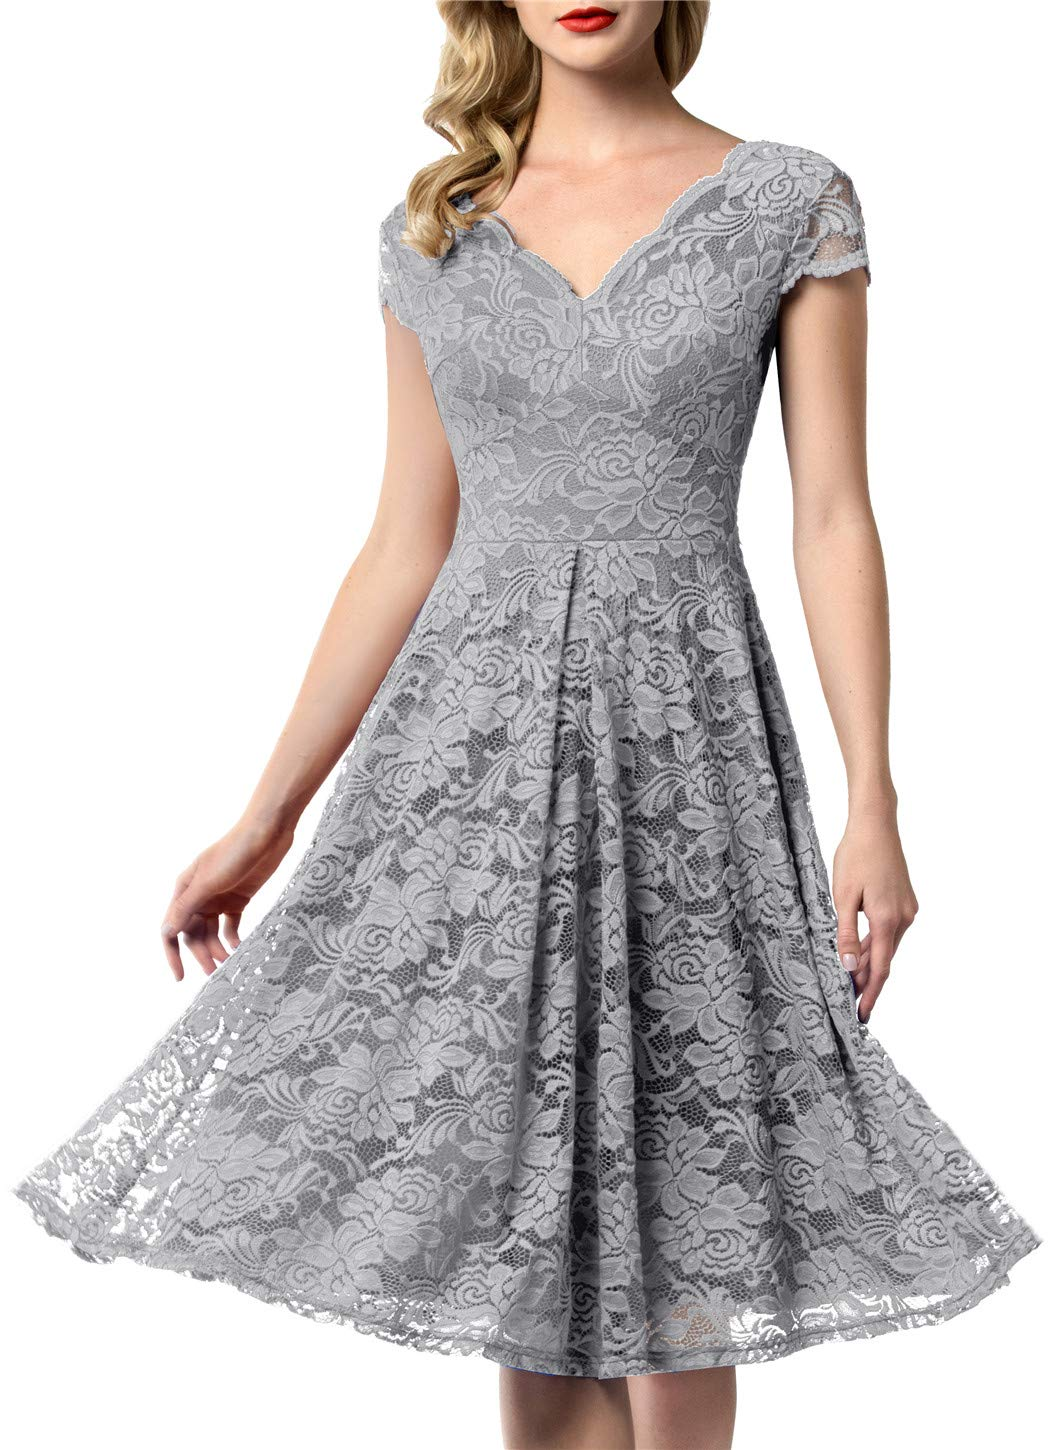 Mother Of The Bride Dresses - Women's Vintage Floral Lace Bridesmaid Dress 3/4 Sleeve Wedding Party Midi Dress